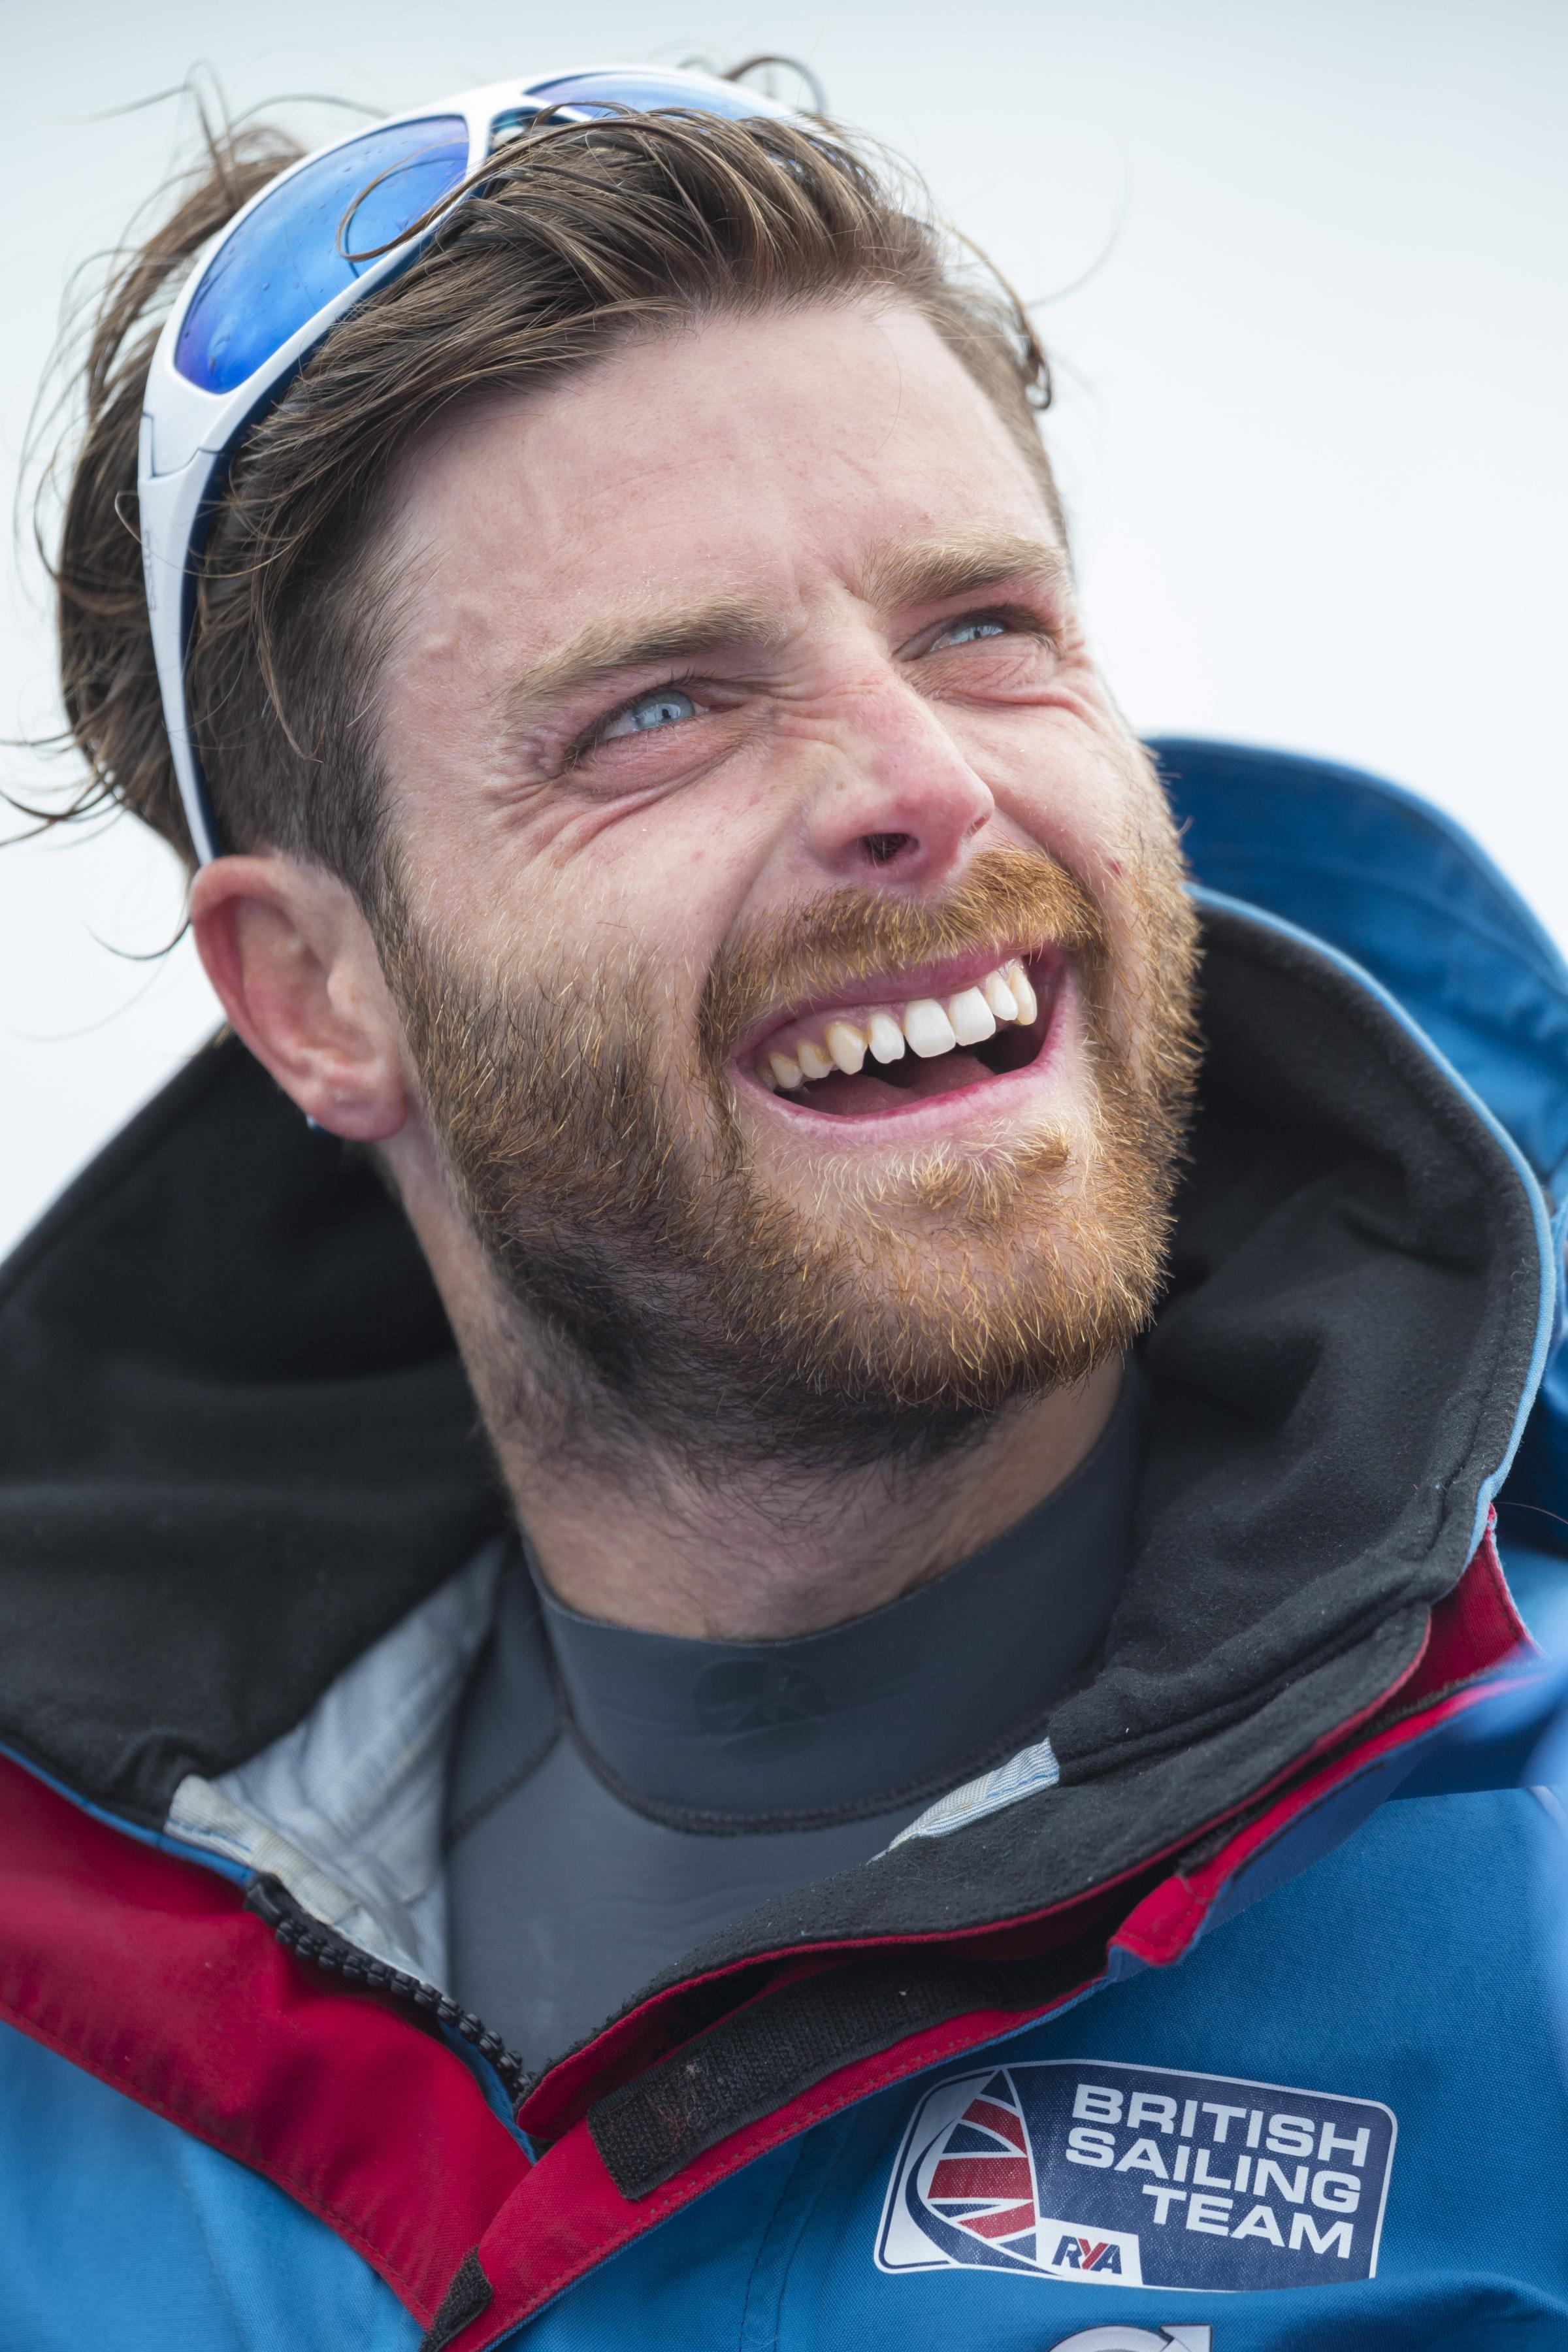 British Olympic sailor Luke Patience, who with team-mate Chris Grube, won bronze in the 470 Men's class on day five of the ISAF Sailing World Cup at the Weymouth and Portland National Sailing Academy, Weymouth.